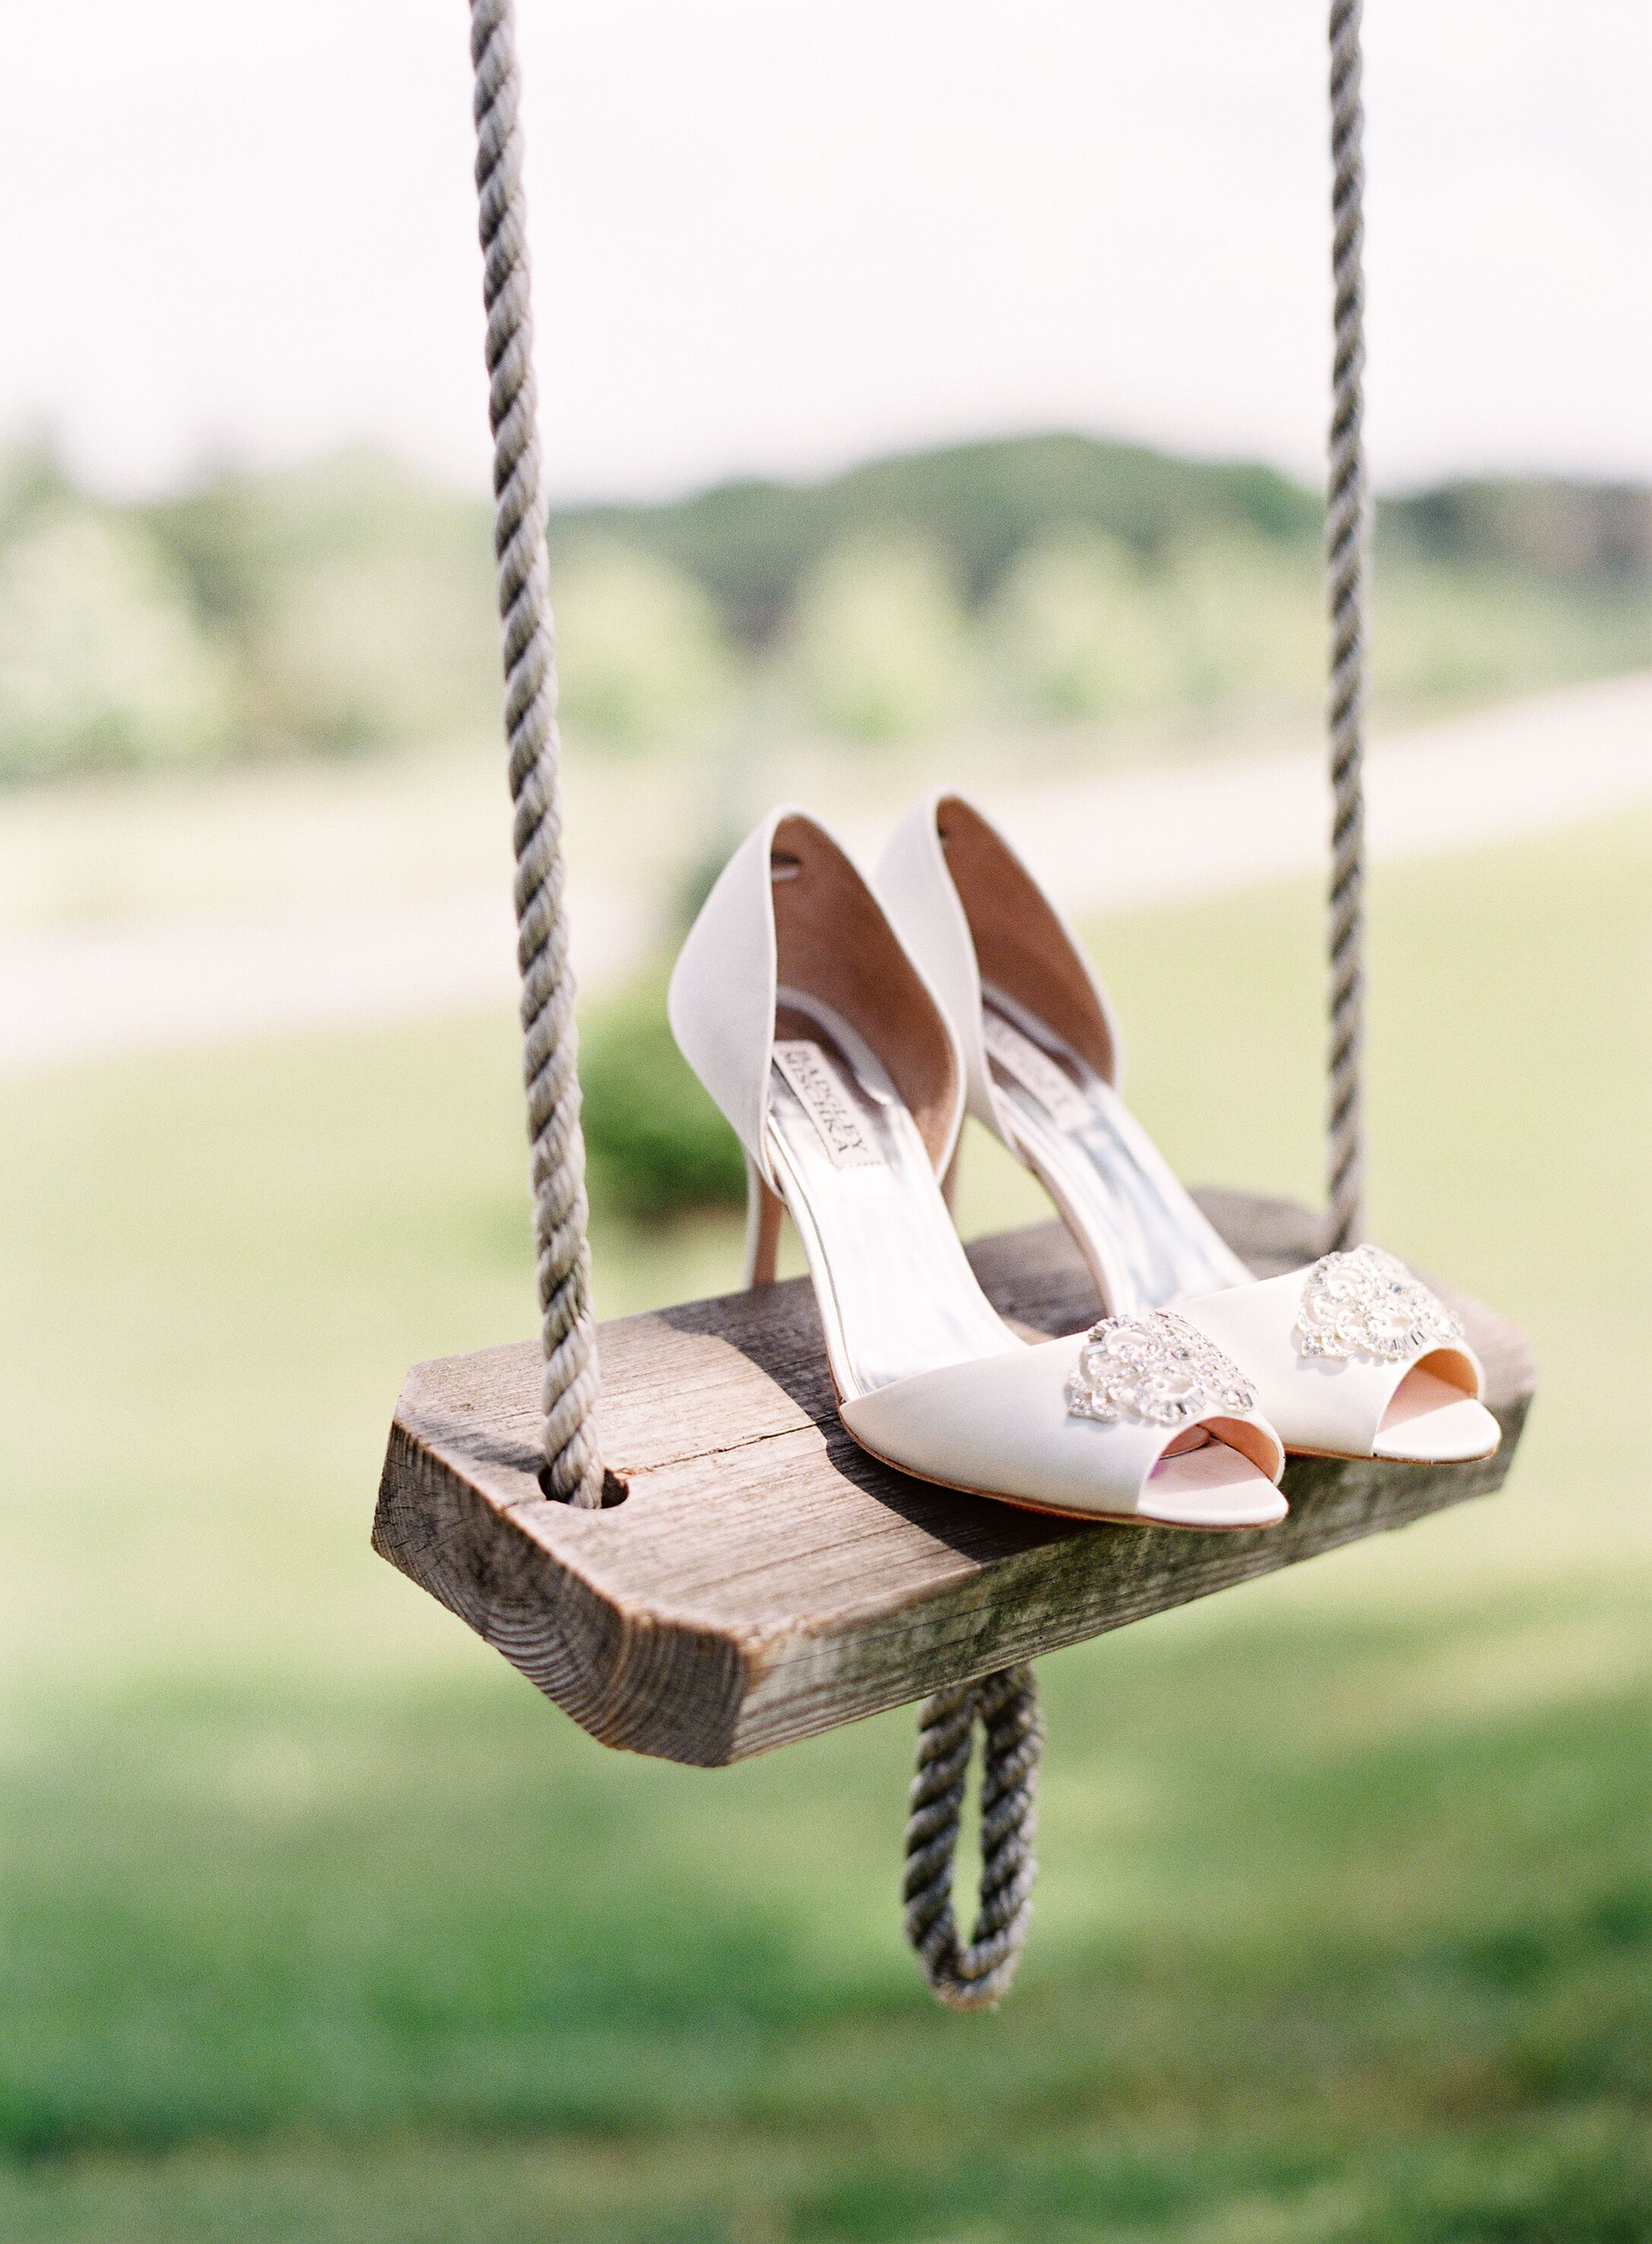 Shoes on Farm Swing_Armstrong Farms Prop Shop.jpg